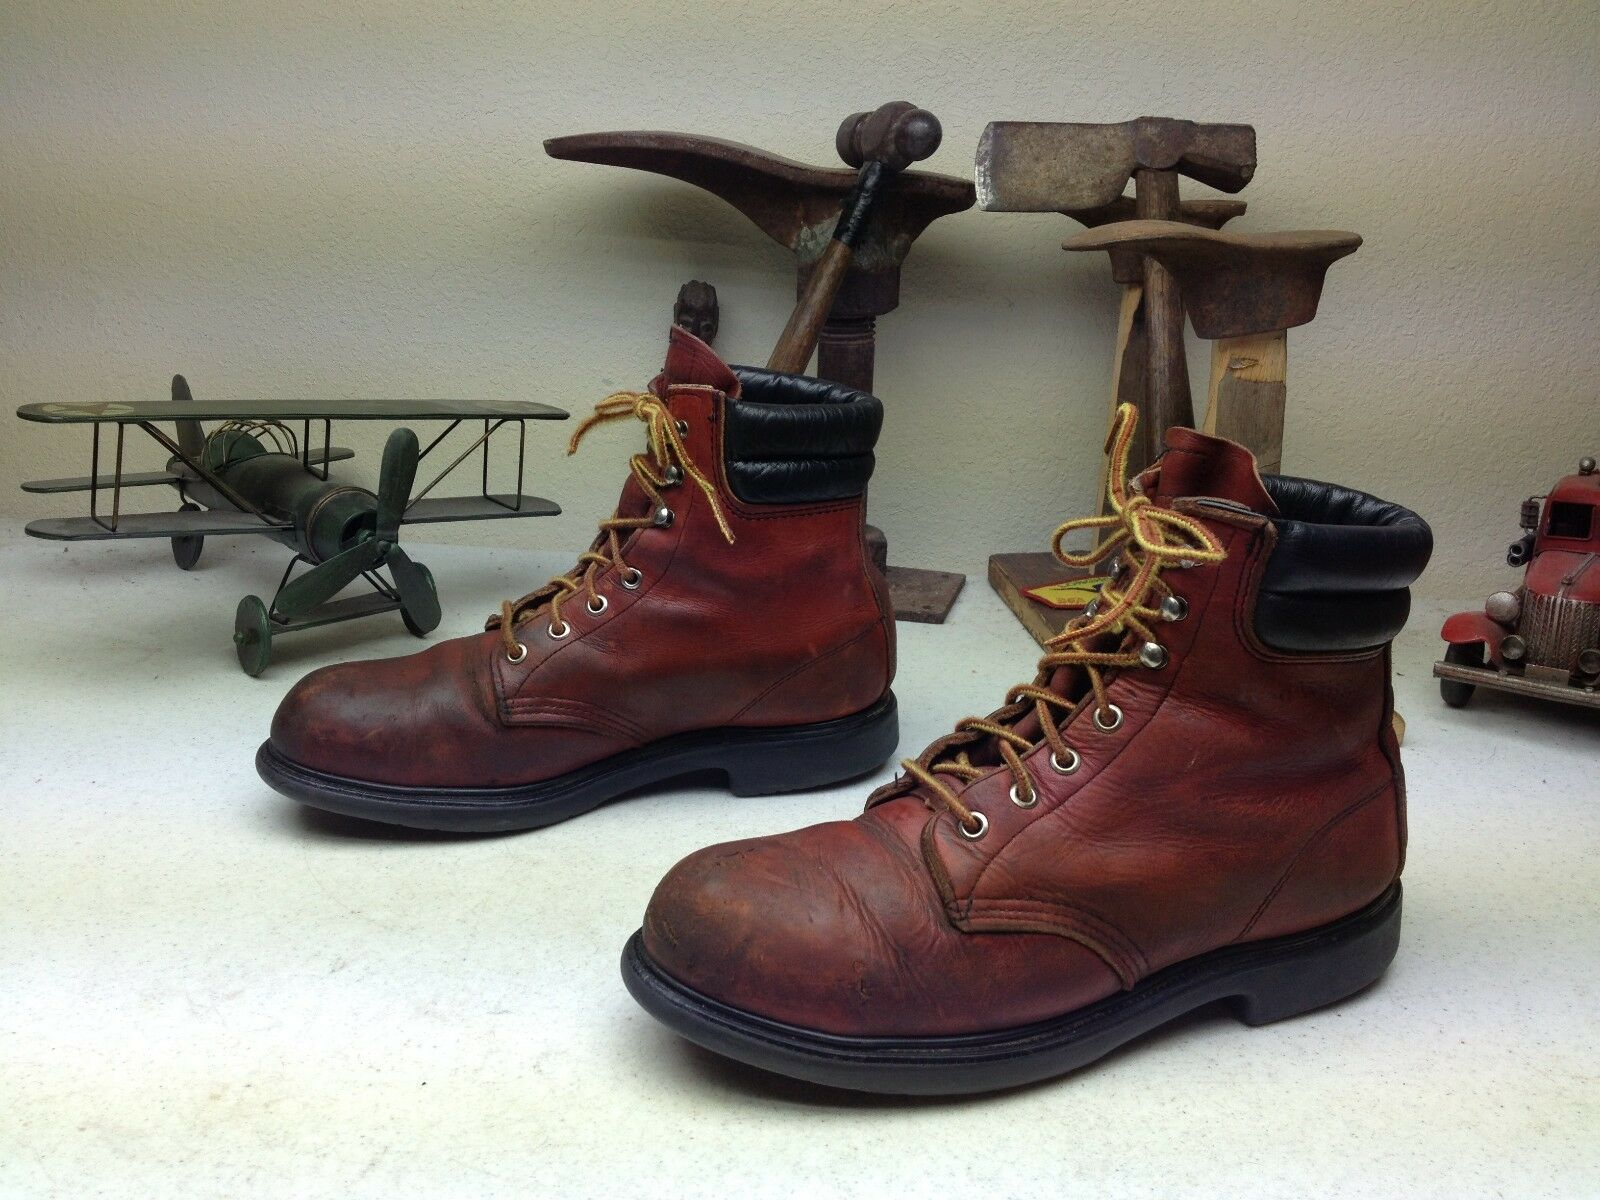 VINTAGE MADE IN USA DISTRESSED OXBLOOD rot WING LACE UP PACKER Stiefel Größe 9.5 B